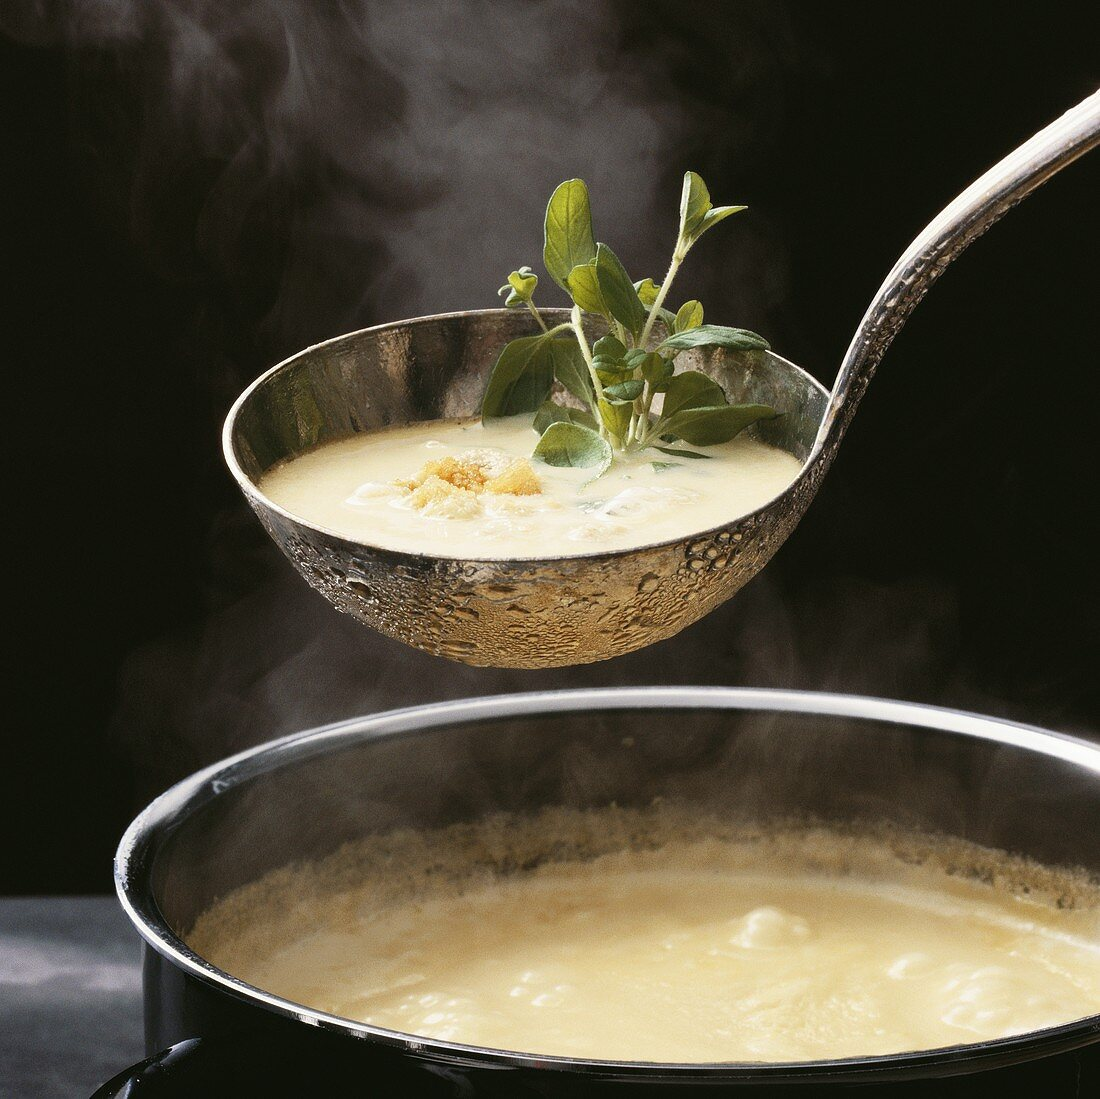 Steaming cream soup with croutons on ladle above pot